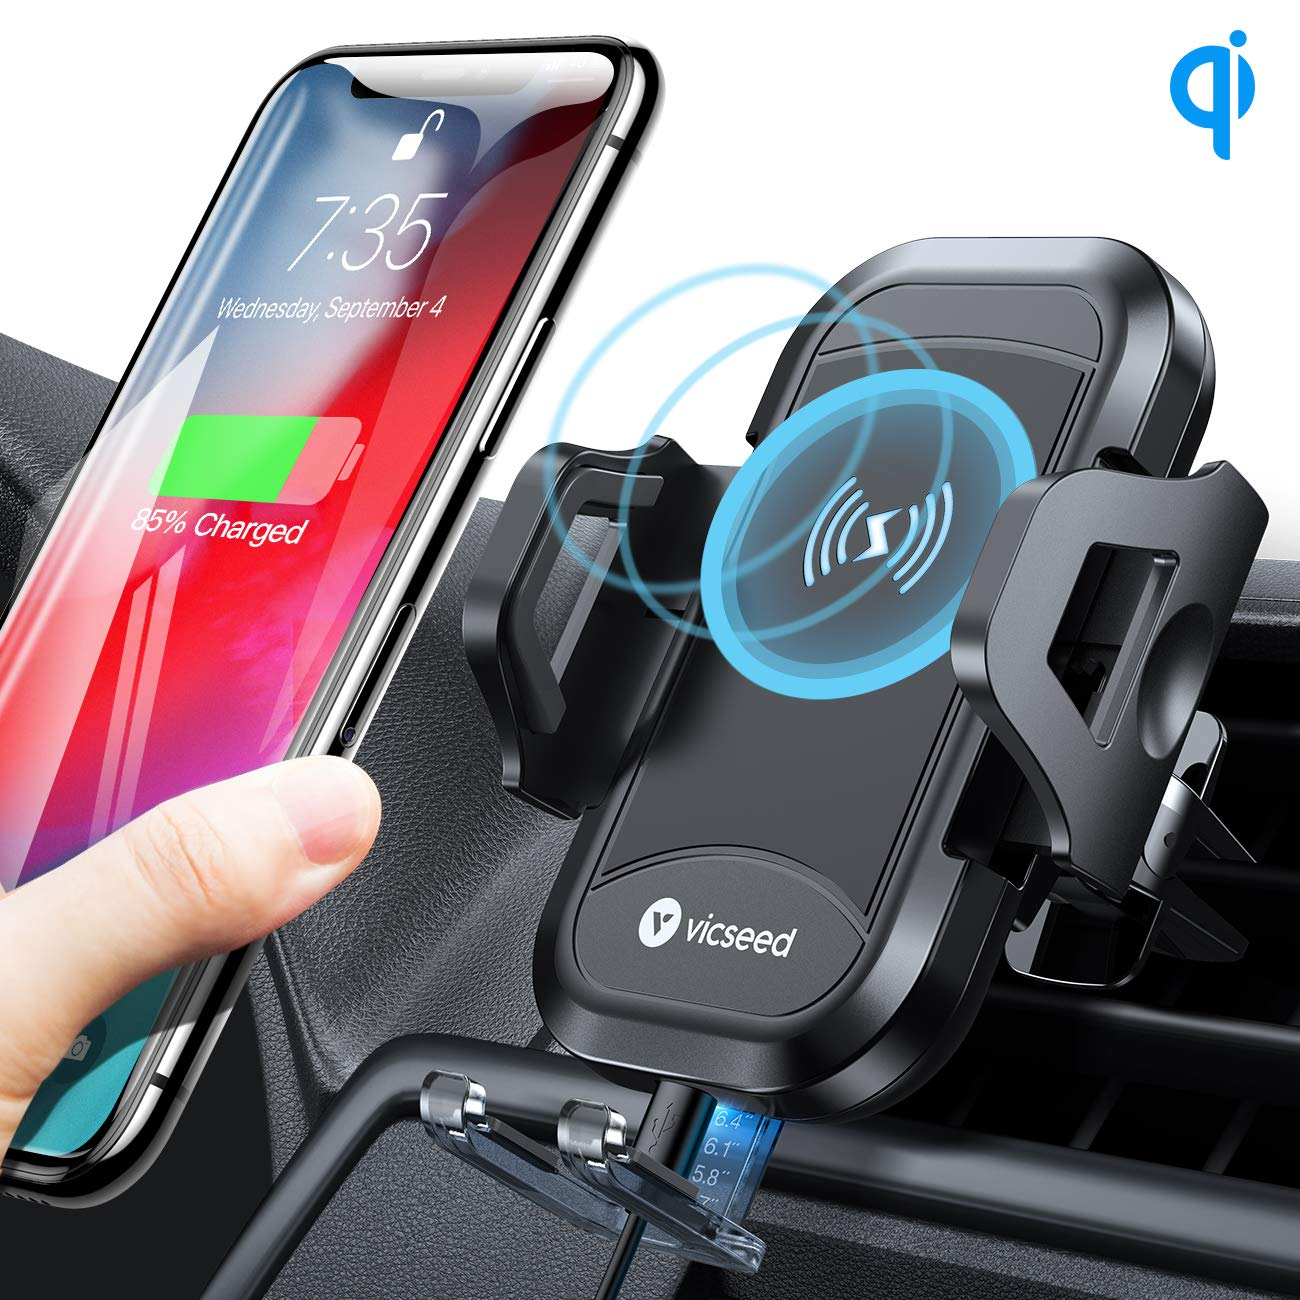 VICSEED Wireless Car Charger Mount Fast Charging Qi Wireless Car Charger 7.5W 10W Qi Car Charger Air Vent Phone Holder for Car Mount Fit for iPhone 11 Pro Max XS 8 Plus XR Samsung Note9 S10 S9 LG etc. by VICSEED